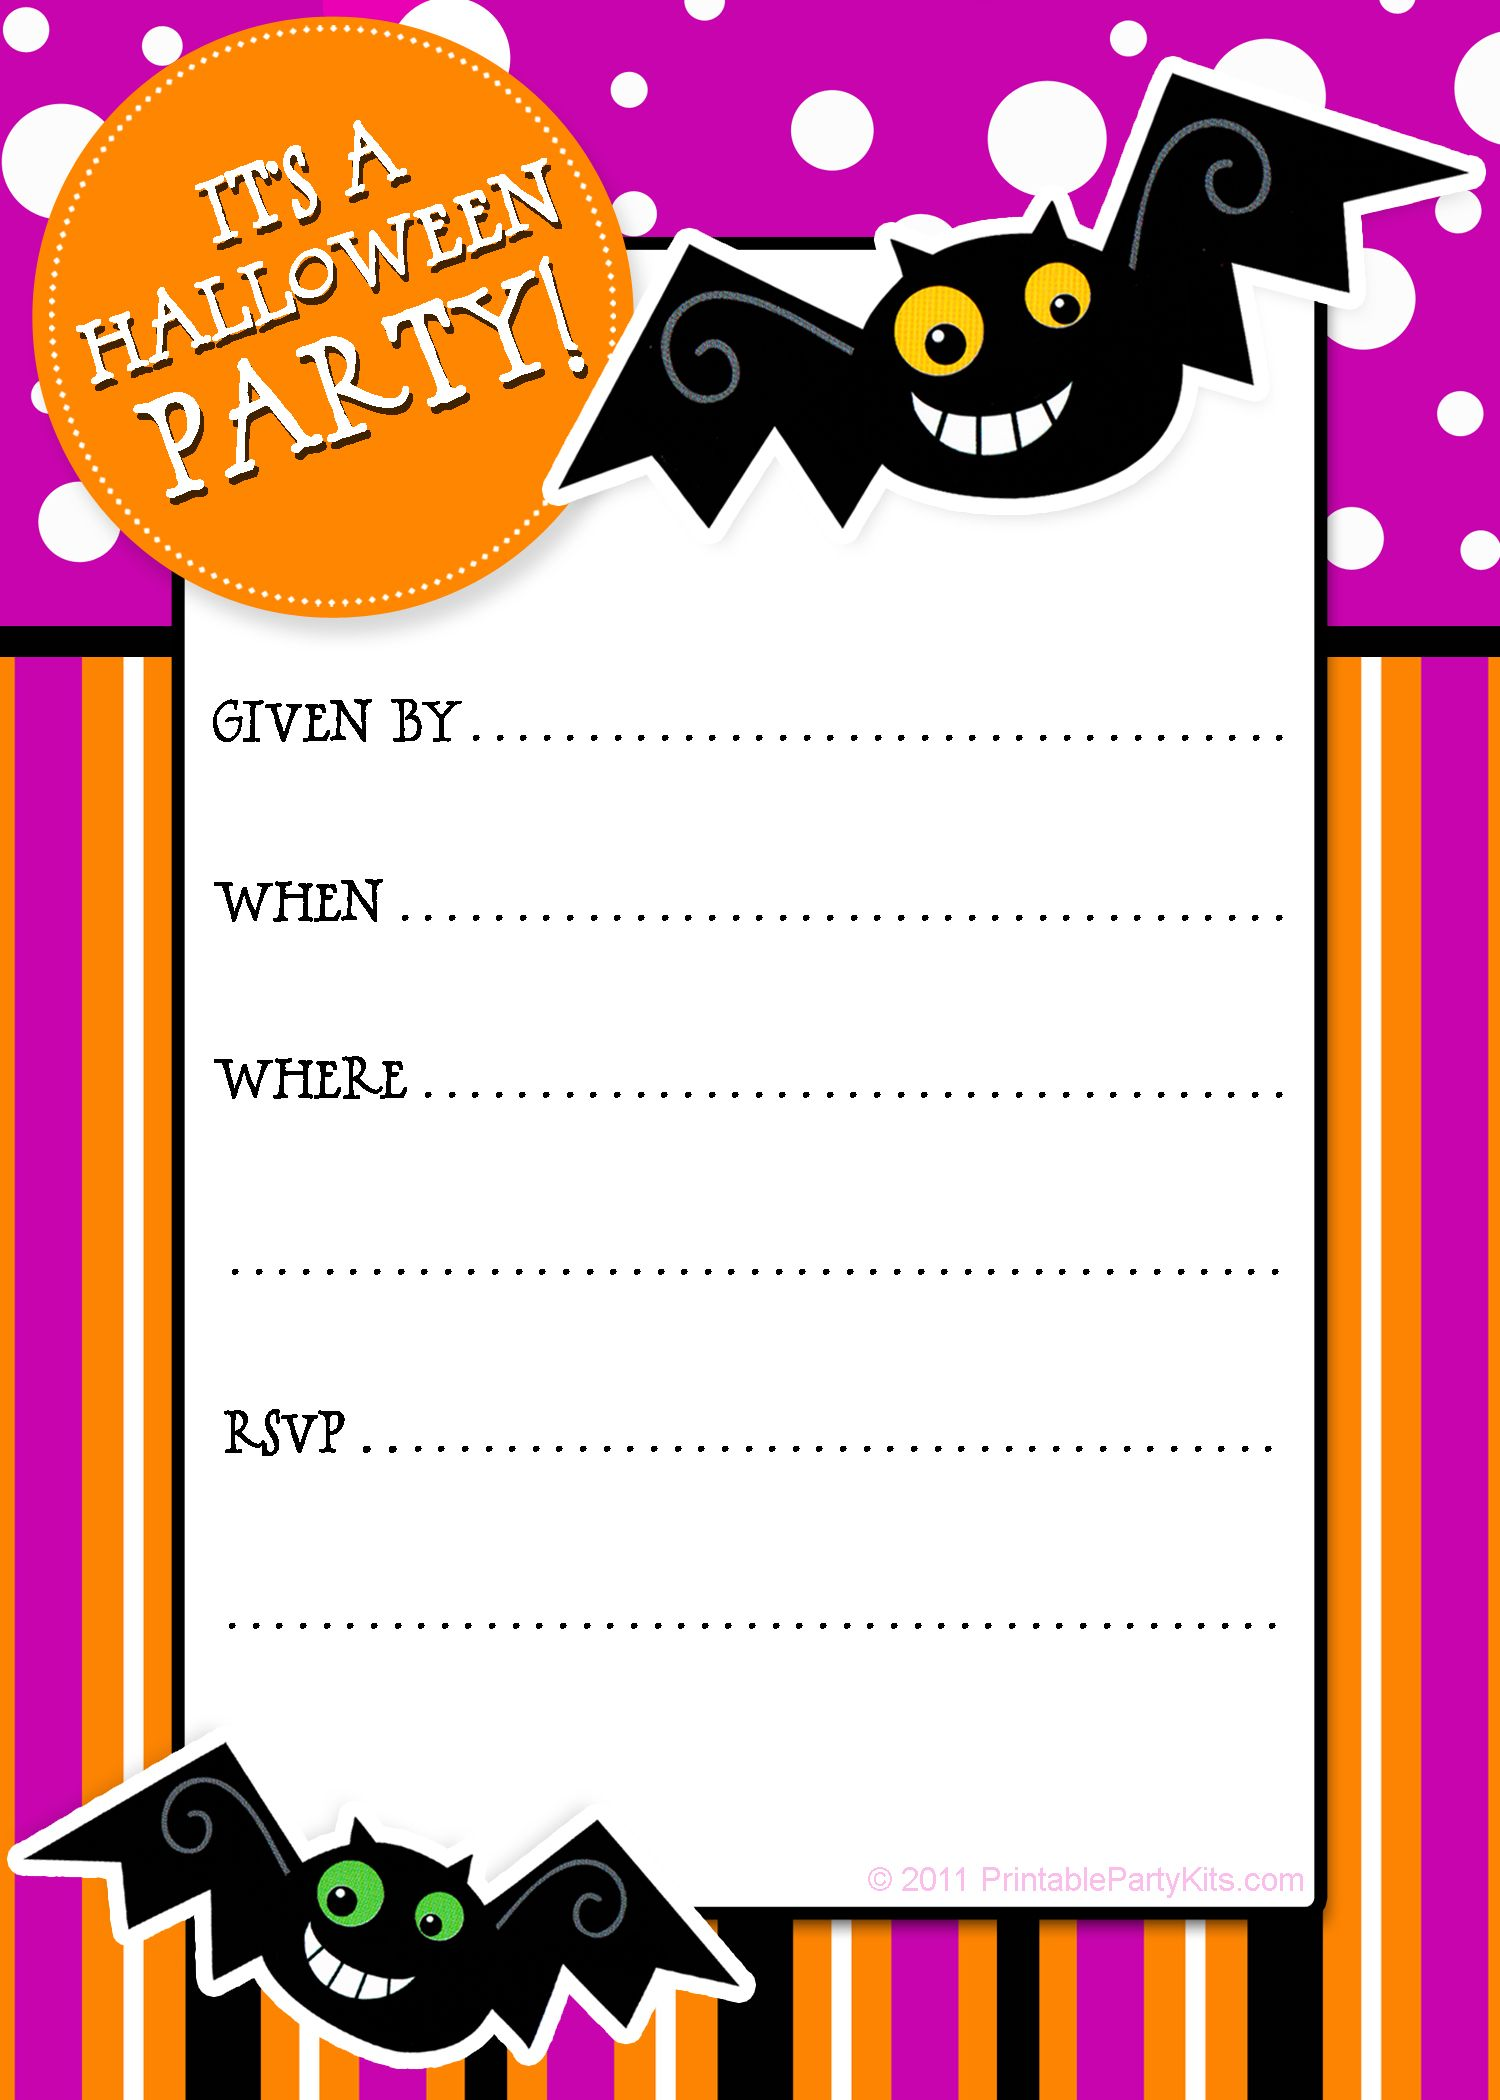 Party planning center free printable halloween invitations party planning center free printable halloween invitations filmwisefo Image collections